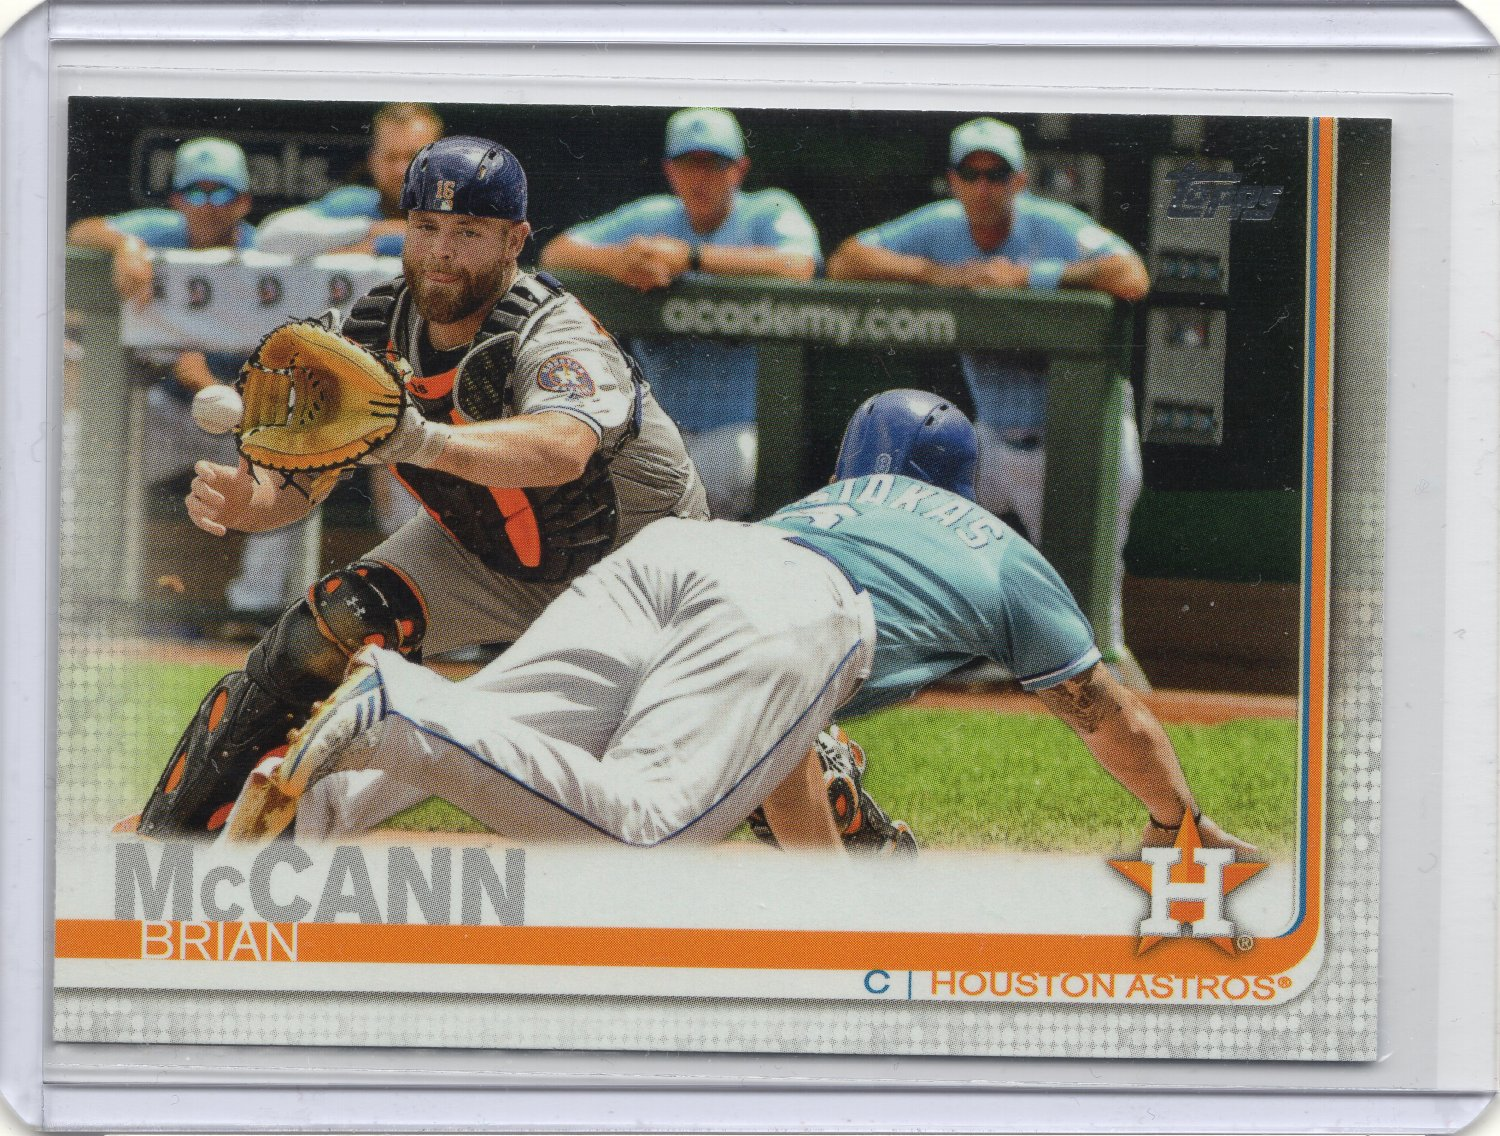 Brian Mccann 2019 Topps Series 1 Card 322 Houston Astros